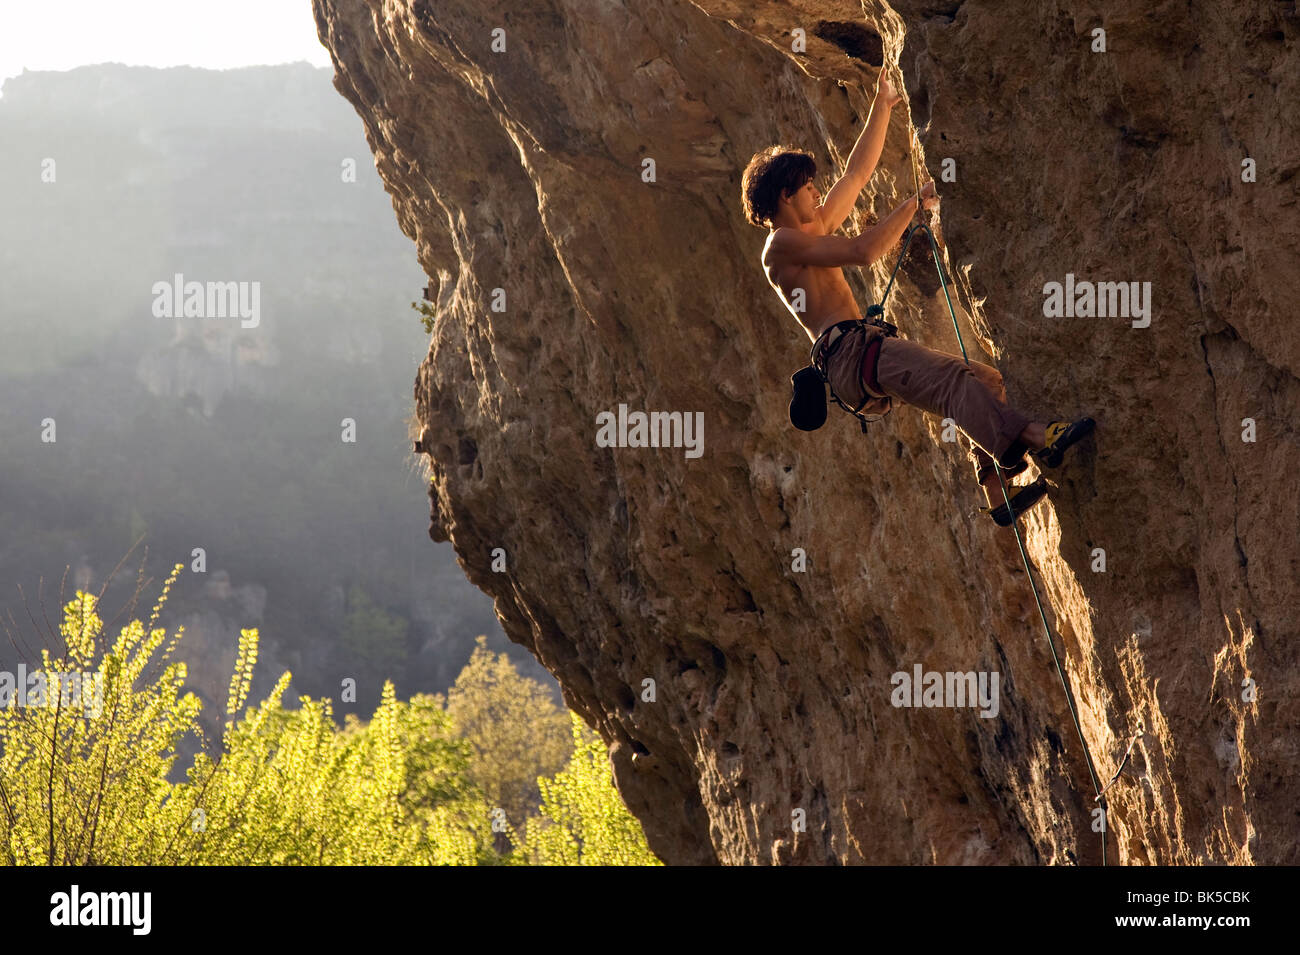 A climber tackles Dromadaire by the Tarn river, Gorges du Tarn, near Millau and Rodez, Massif Central, France - Stock Image